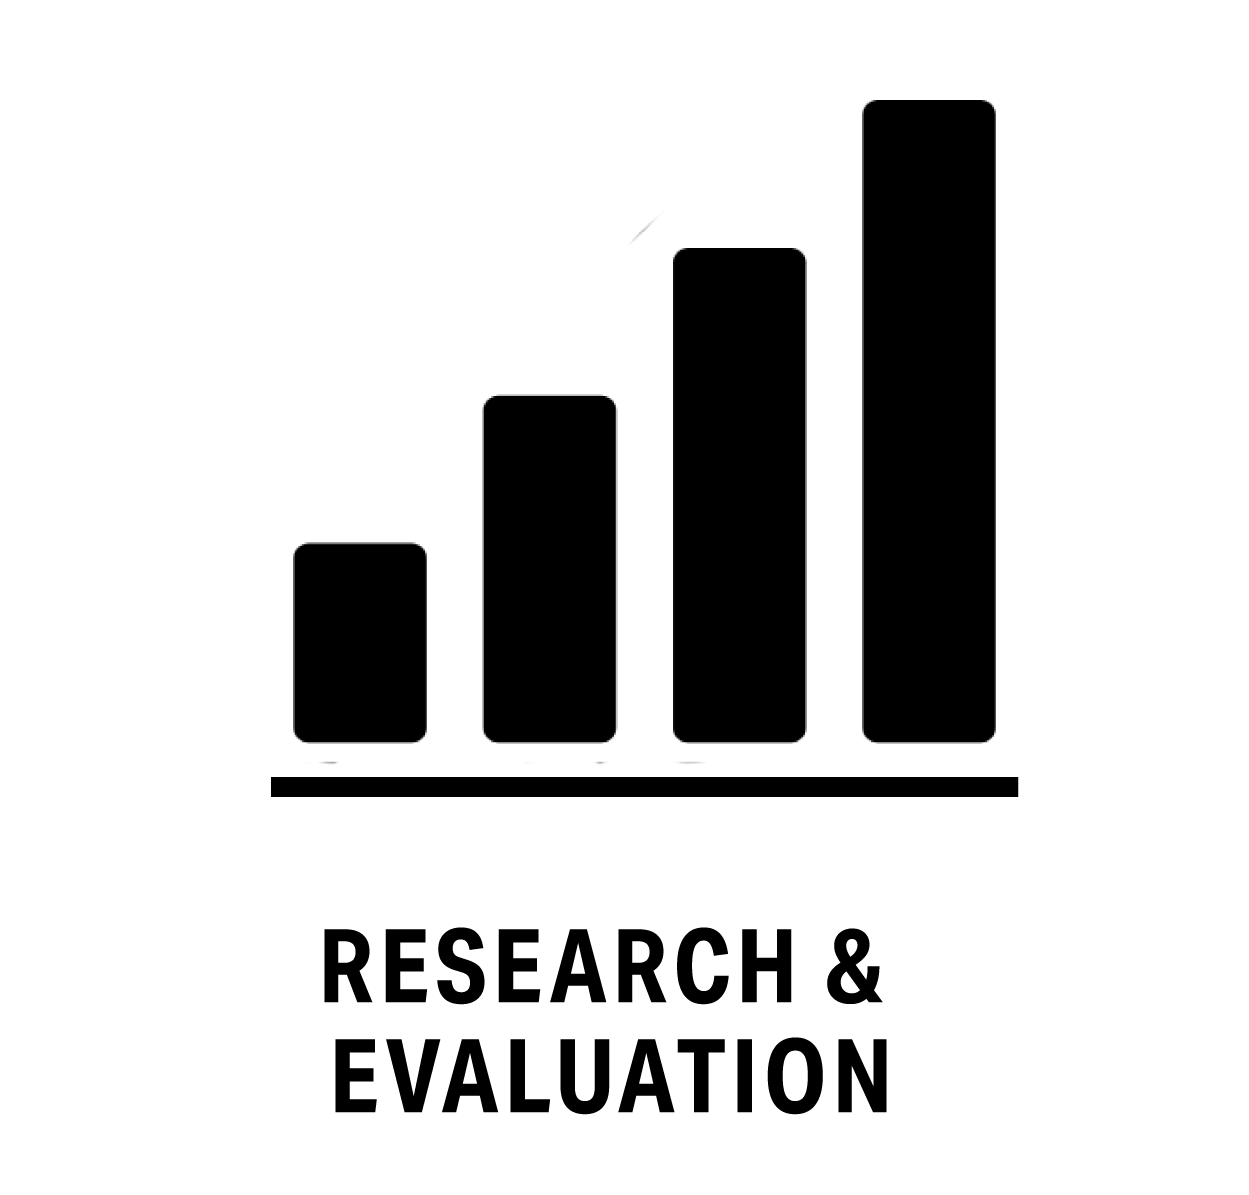 We conduct background literature reviews, audience research, and develop and carry-out evaluations of programs, exhibitions, and visitor experiences. -